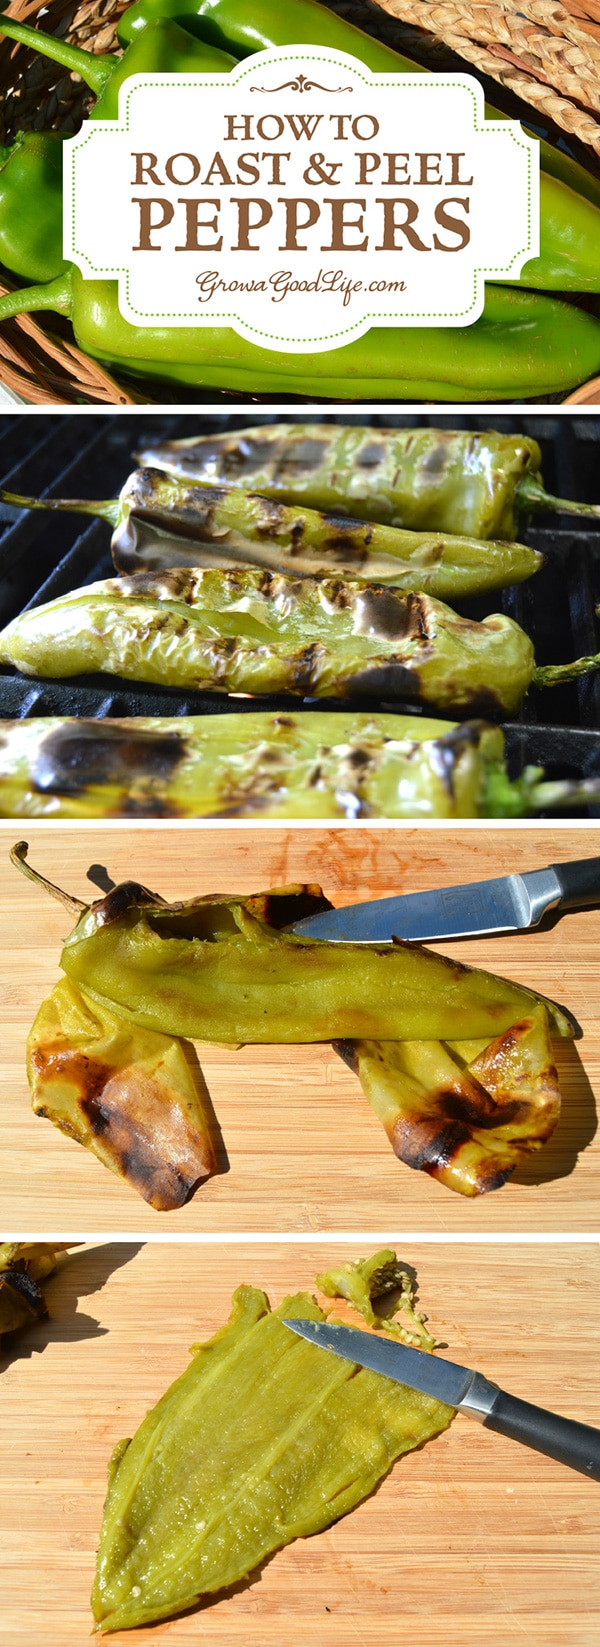 Any type of pepper can be roasted, including green, red or yellow, hot or sweet. Roasting enhances the sweetness of the pepper and adds a nice smoky char depth. Roasted and peeled peppers can be used in your favorite recipes right away or frozen for later.